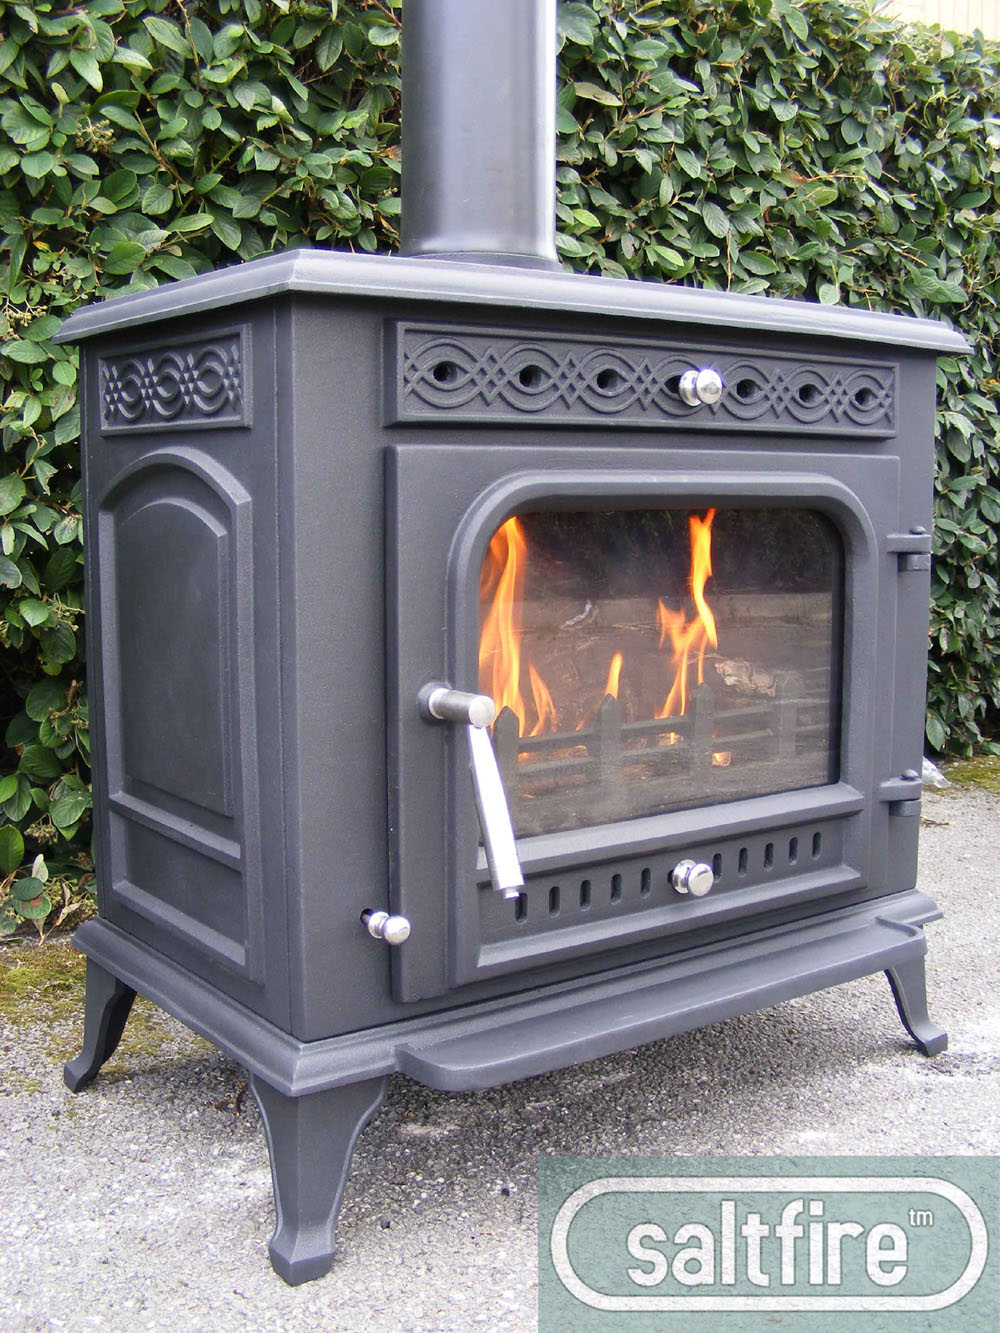 Click pictures for large version - Grande Purbeck 12kW Multifuel - Medium Multifuel Stoves